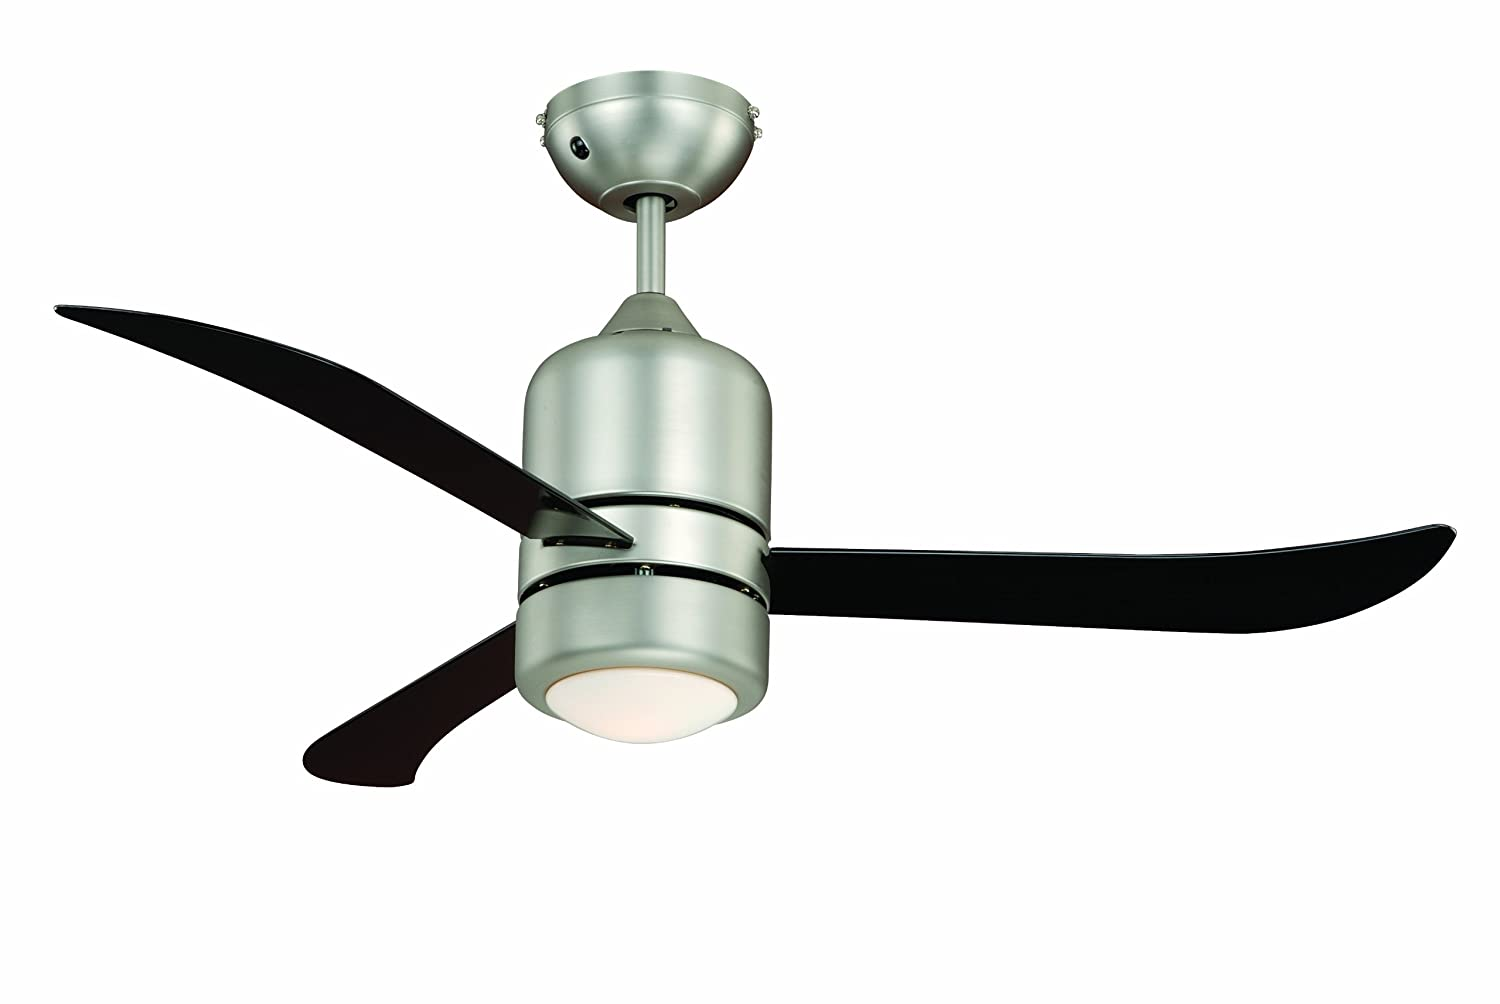 FN51133 240 V AireRyder Ceiling Fan Loft Nickel Transparent with Lighting and Remote Control 45 W